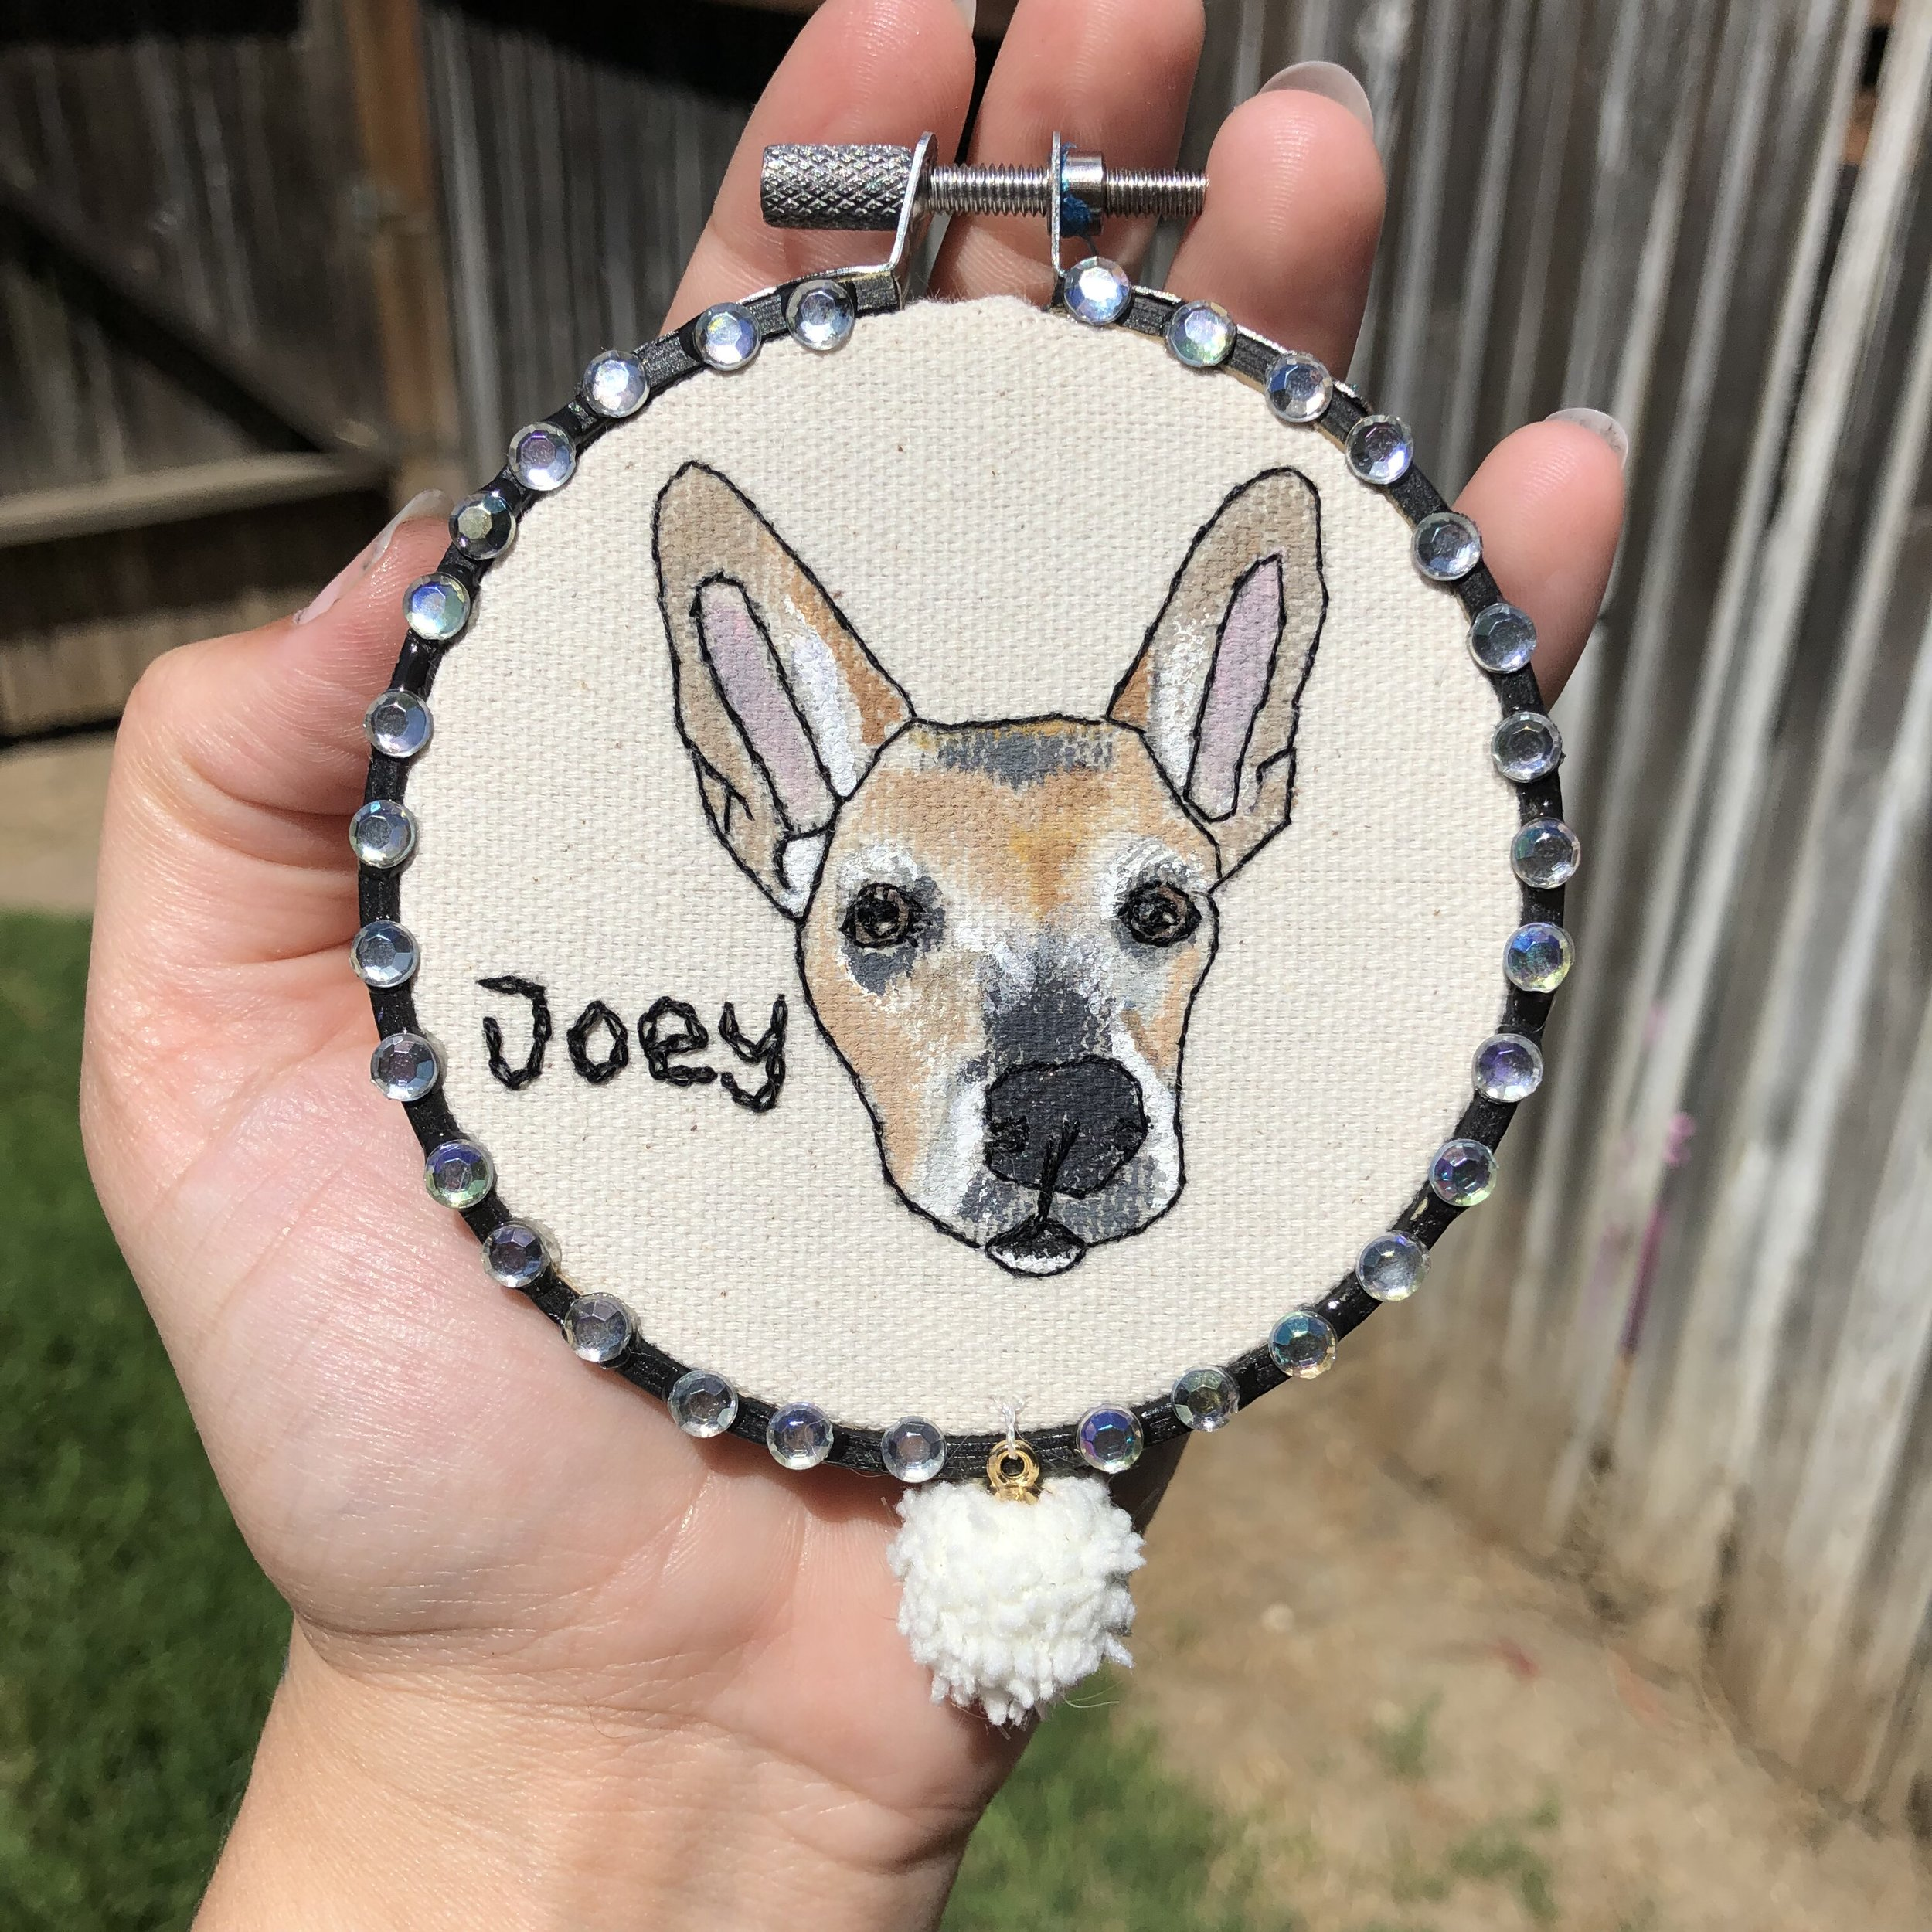 - I'm so happy with the way this piece turned out! Working with you was so easy and fun, and I loved watching my sweet pup come to life in this hoop. I love your use of mixed media!! It's so unique and definitely makes every piece one of a kind. I am so lucky to own your art, and I will definitely be purchasing from you in the future. ❤